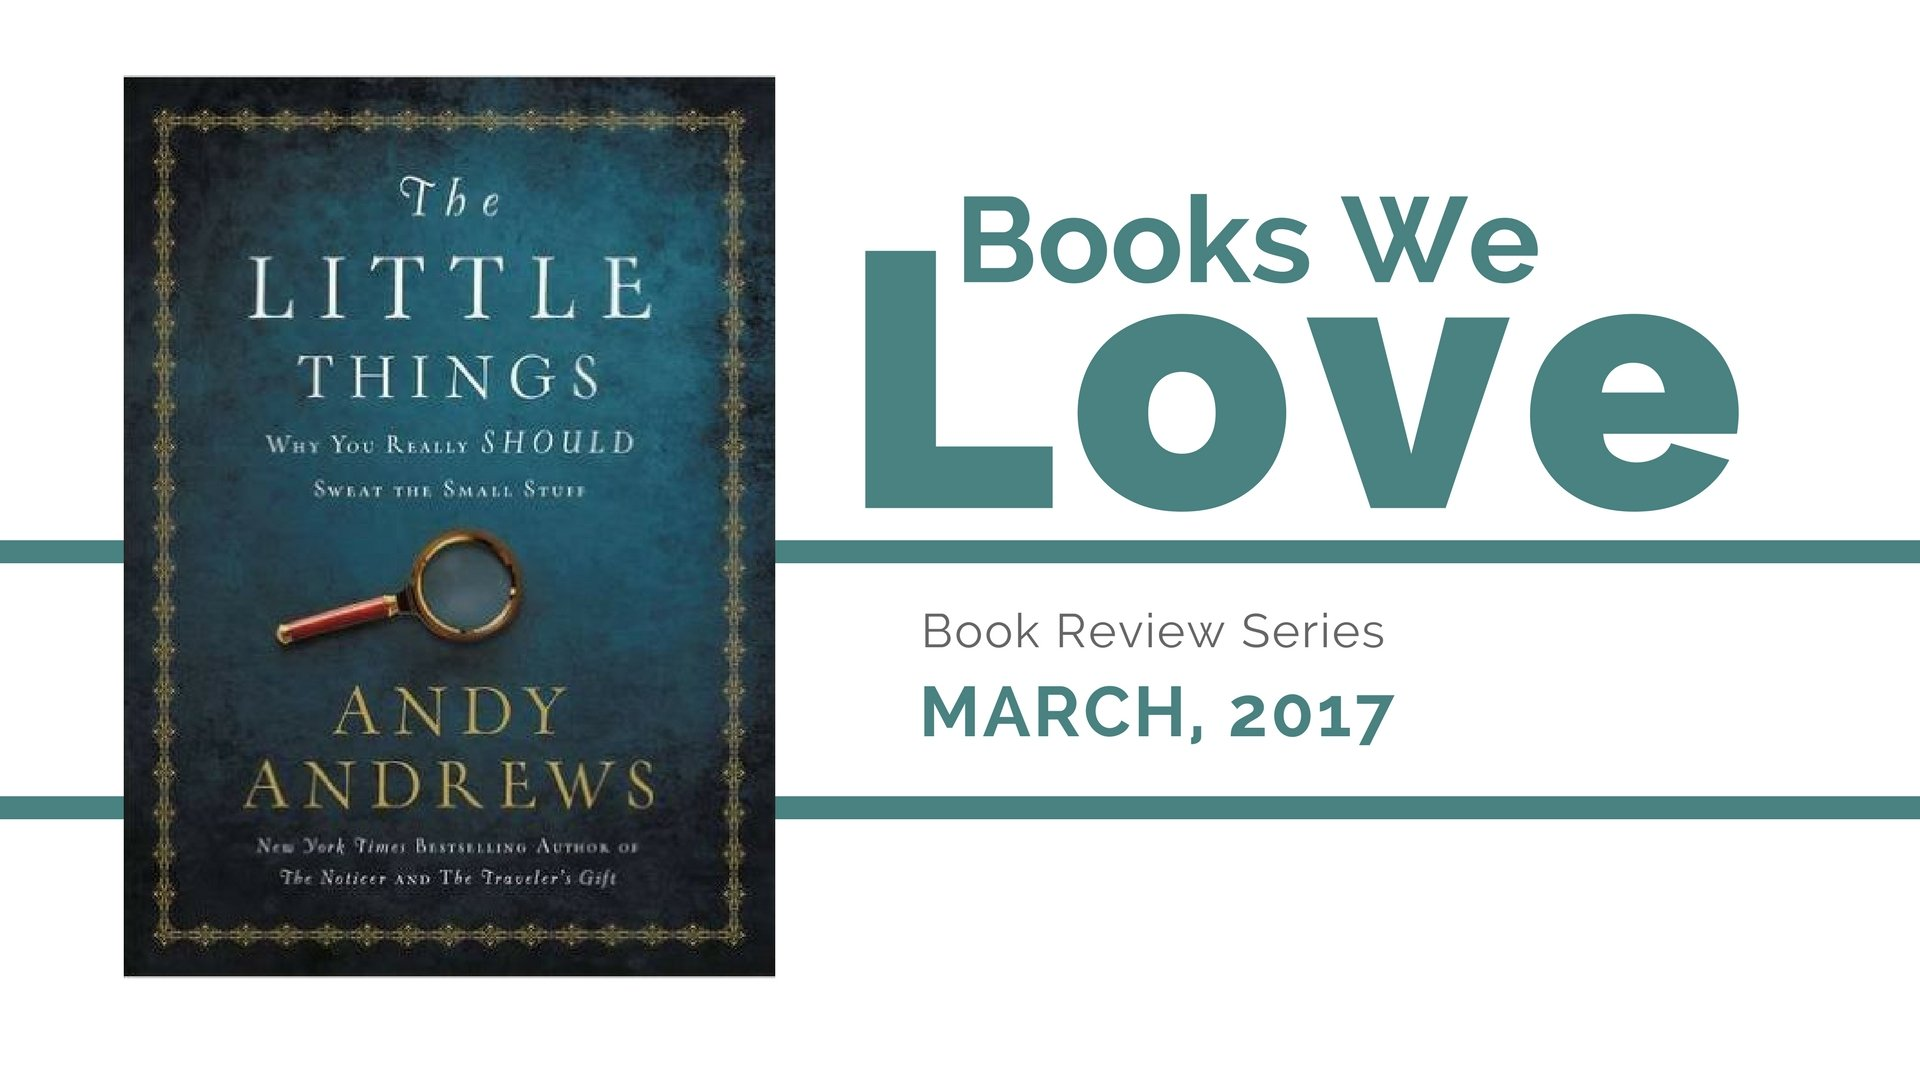 Books We Love: Exclusive – The Little Things by Andy Andrews [Review]